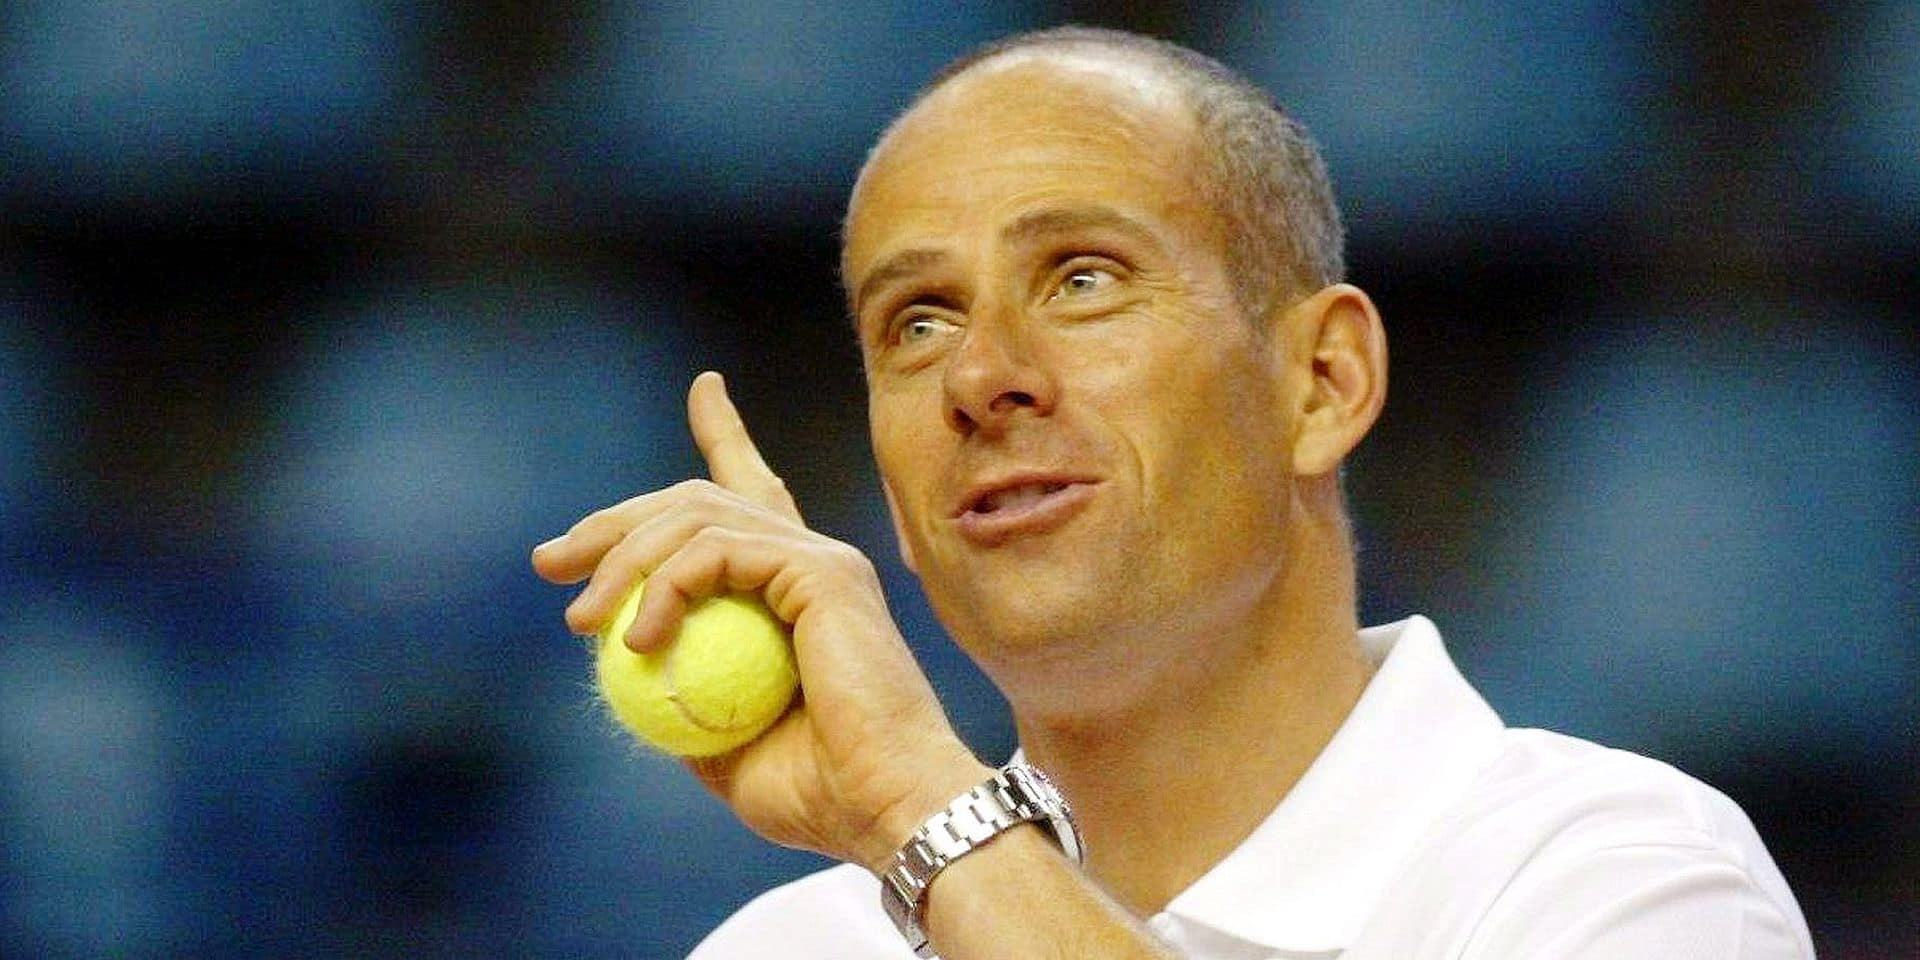 epa00686854 French Davis Cup team captain Guy Forget makes a point during the tennis Davis Cup training session in Pau, France, Thursday, 06 April 2006. France will play against team Russia in the quarterfinals on weekend. EPA/JEAN-LOUIS DUZERT